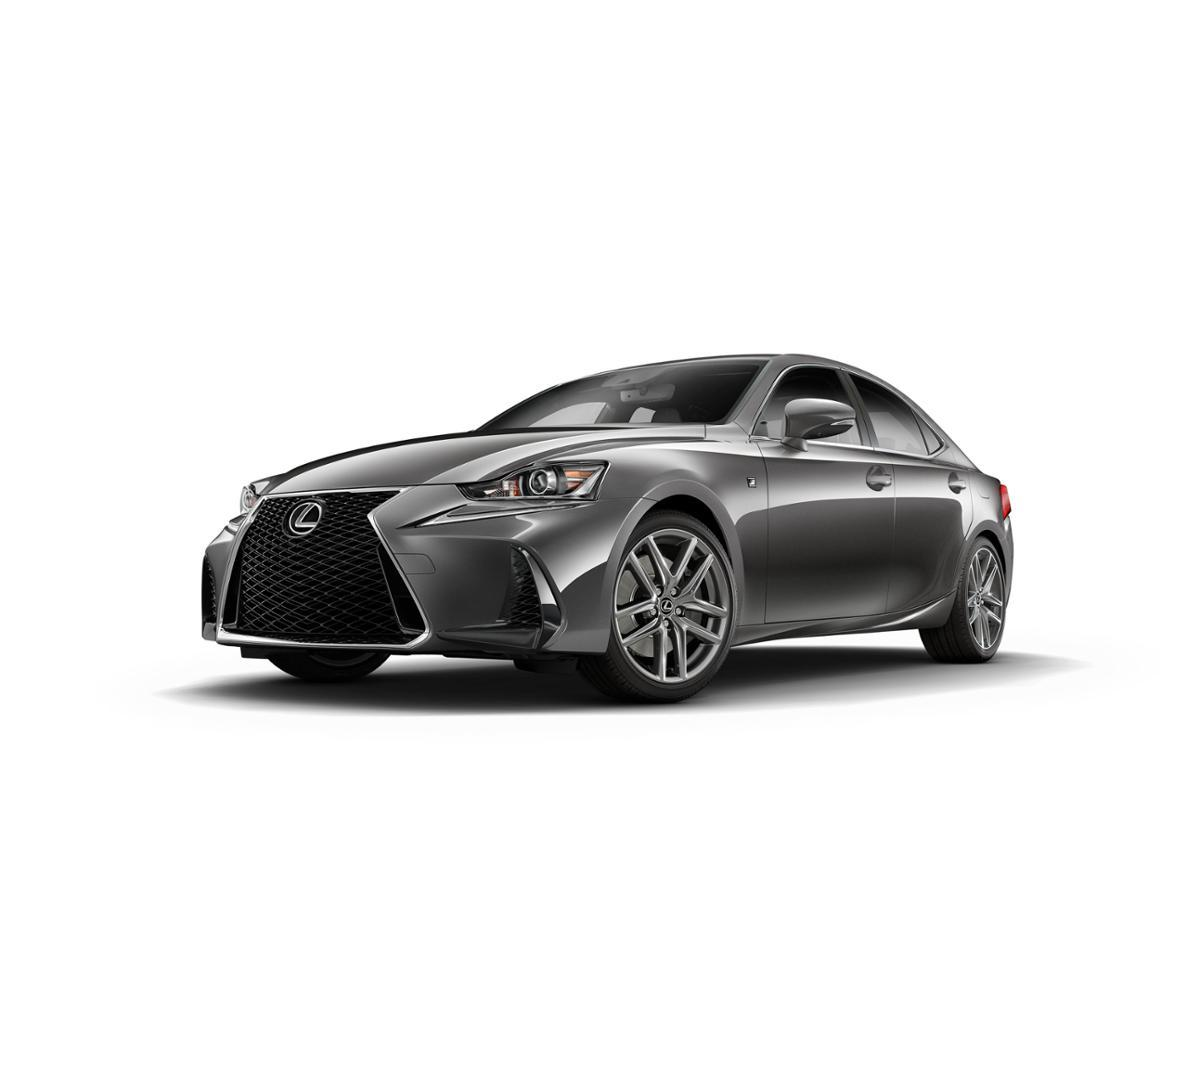 2017 Lexus IS 350 Vehicle Photo in Santa Monica, CA 90404